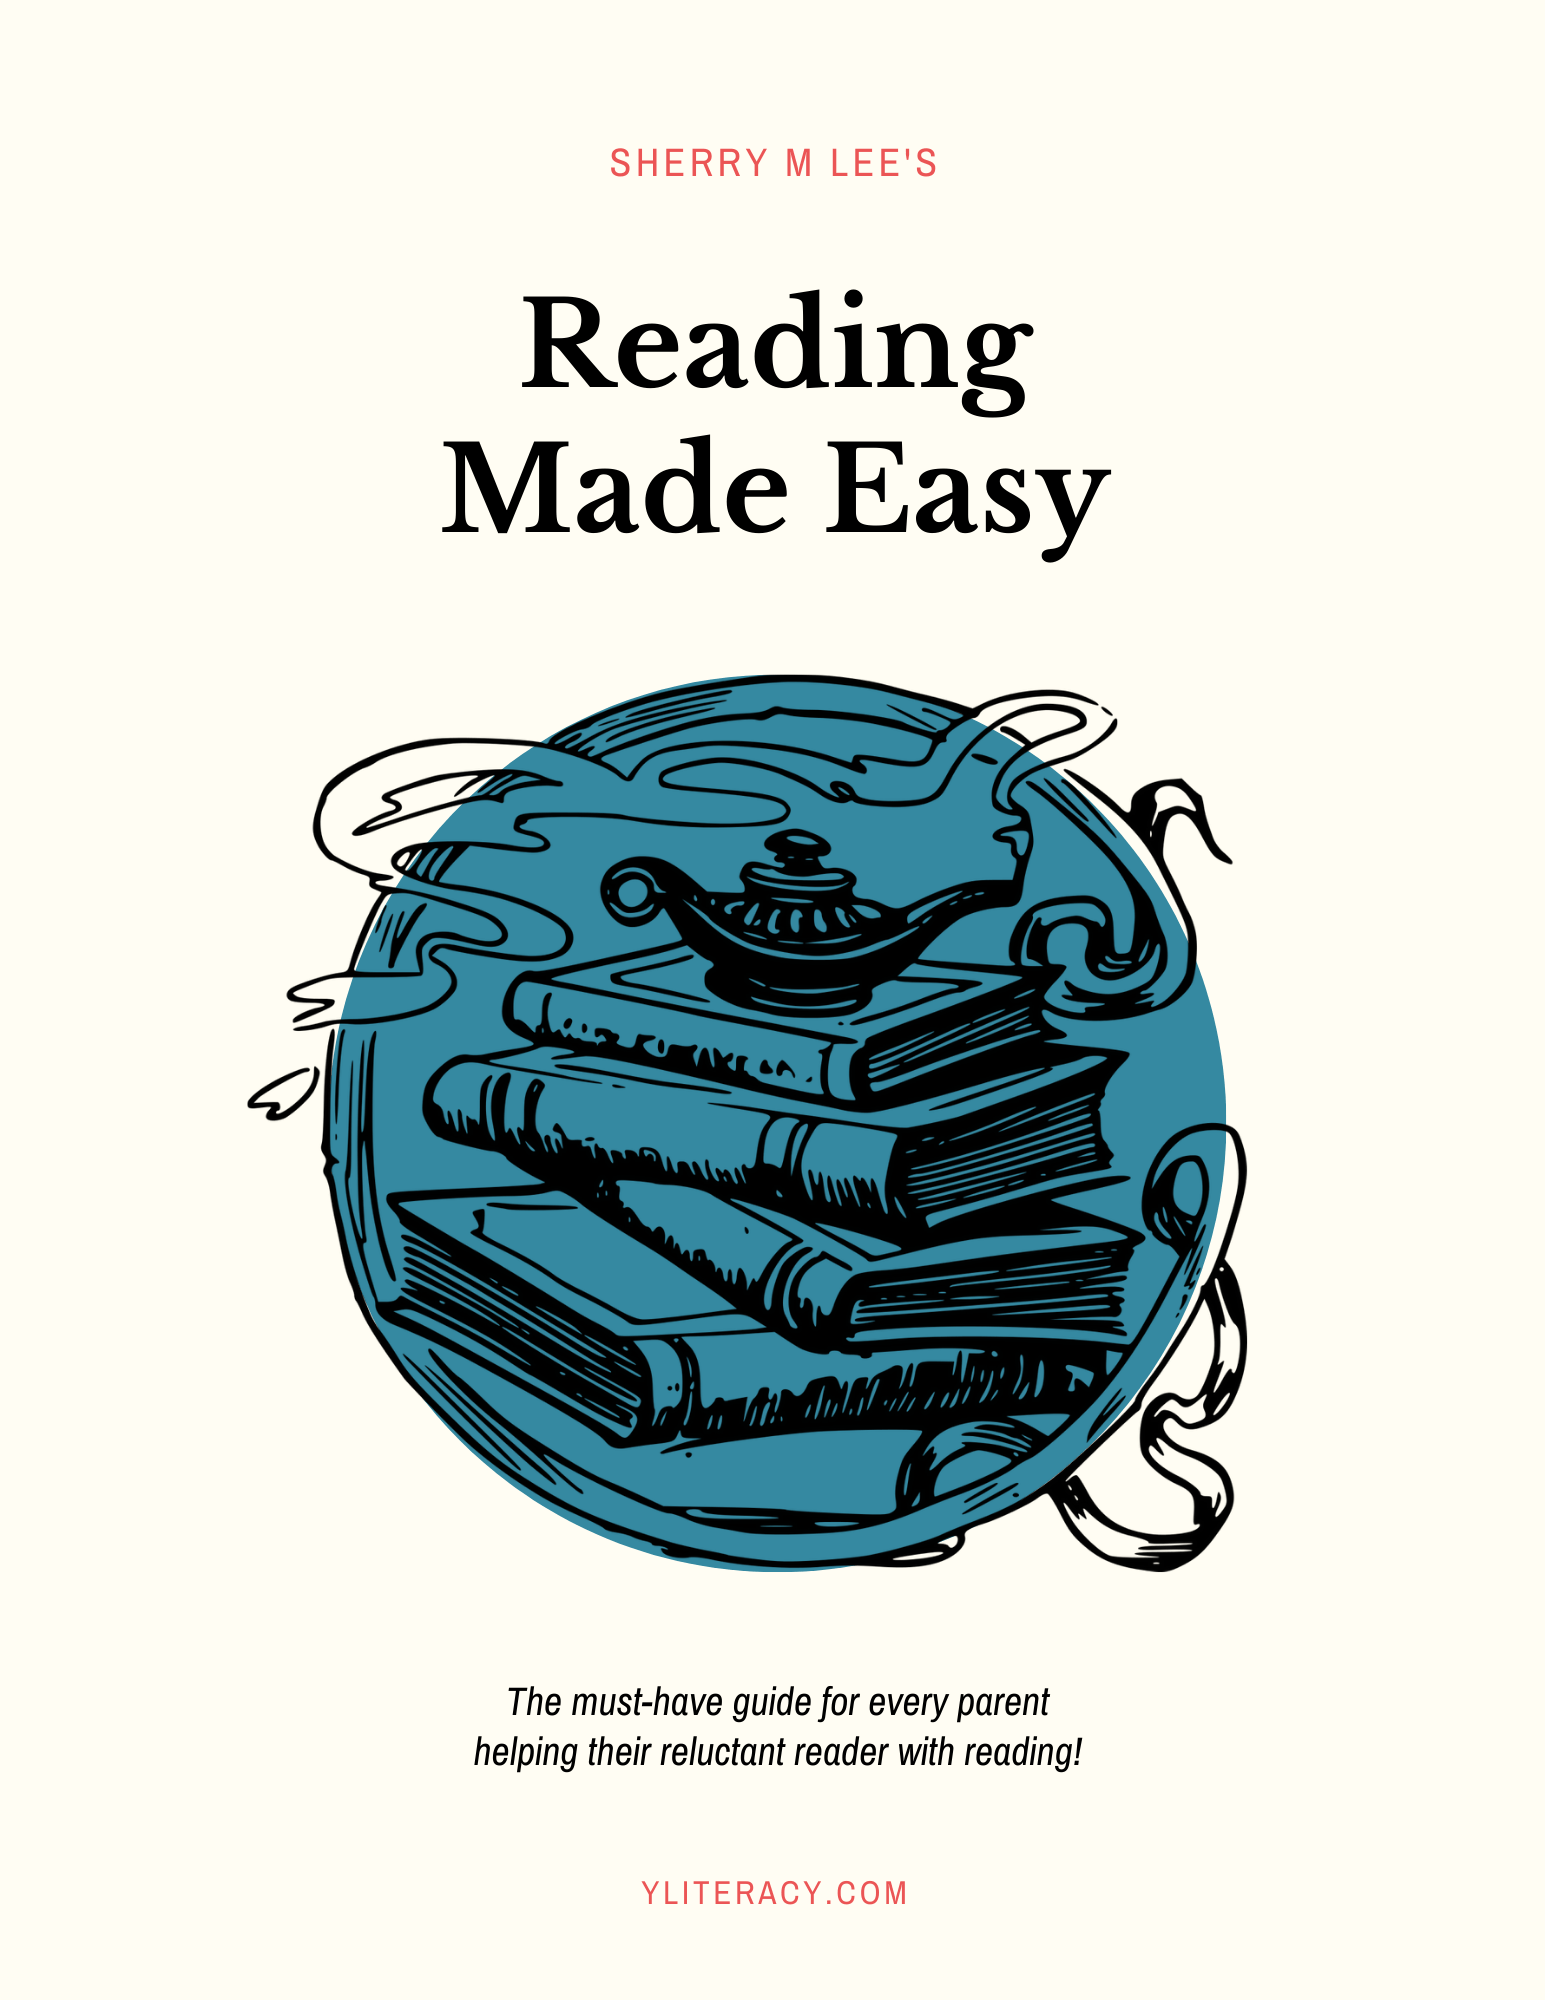 reading made easy; reading support struggling readers; reading disability strategies; reading help for parents